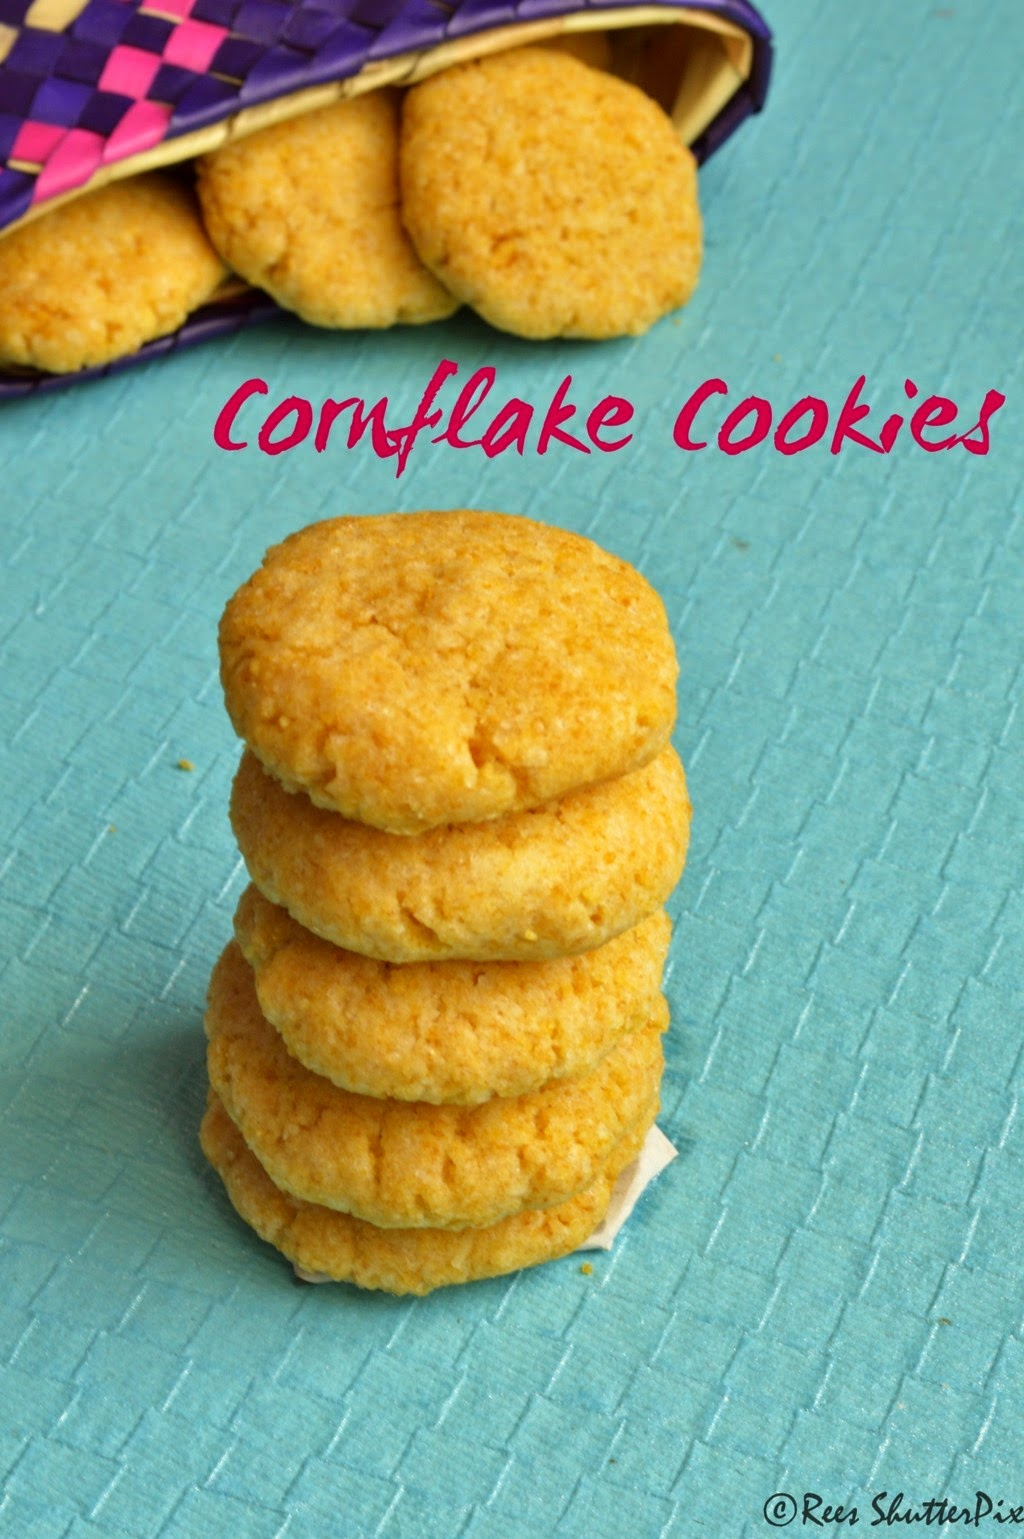 cookies, Teatime snacks, cornflakes,Cornflakes Cookies Recipe | Eggless Baking Recipes,eggless cookies, eggless cornflakes cookies recipe, lemon cookies, lemon cookies recipe, crushed cornflakes cookies, easy cookie recipe,